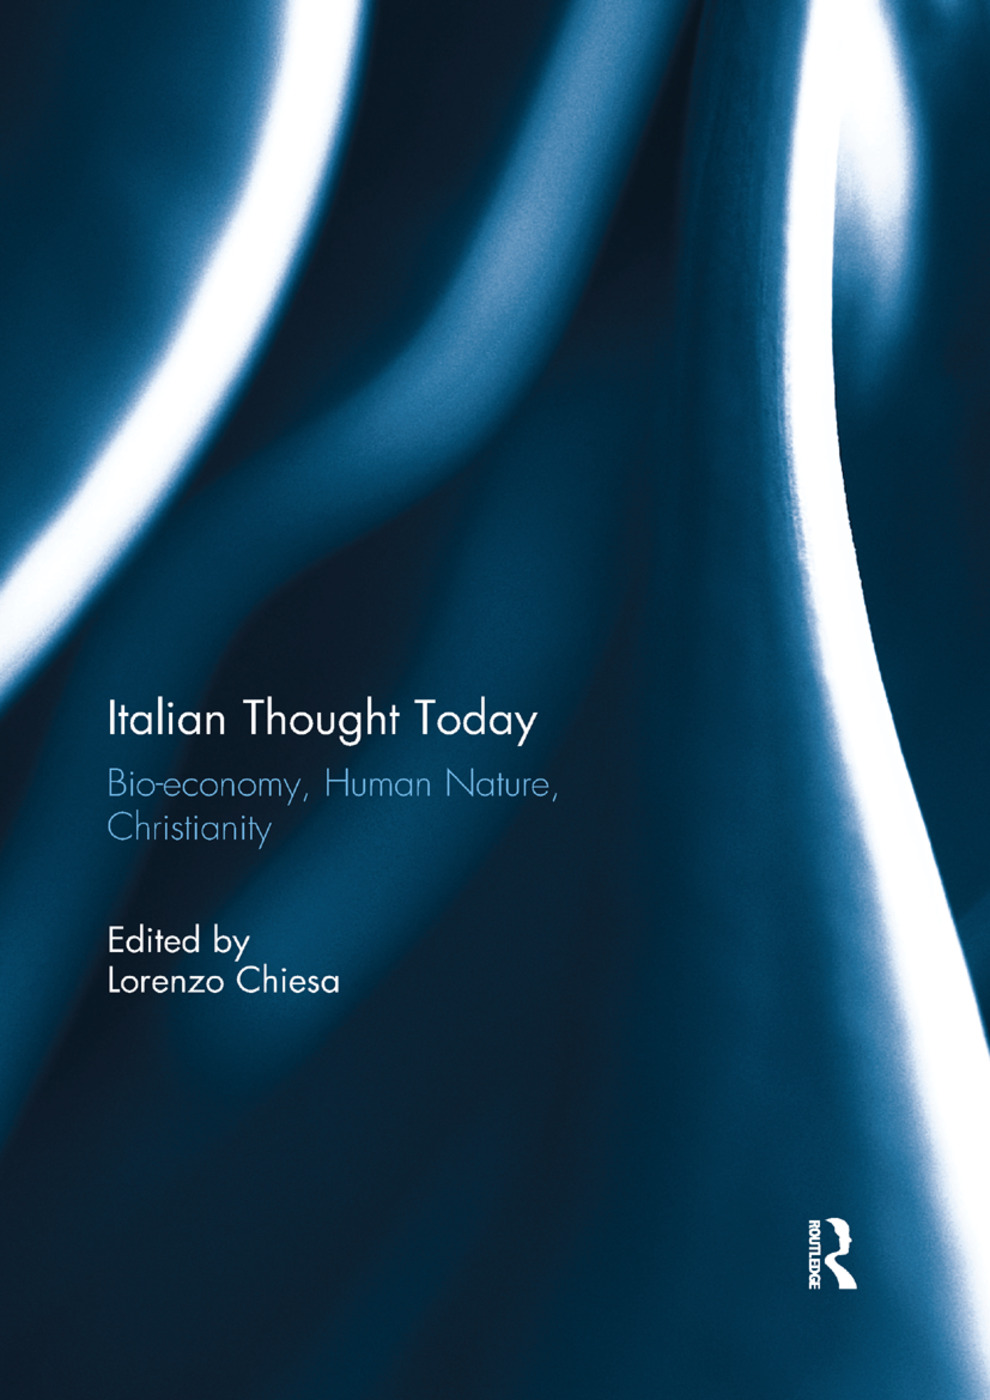 Italian Thought Today